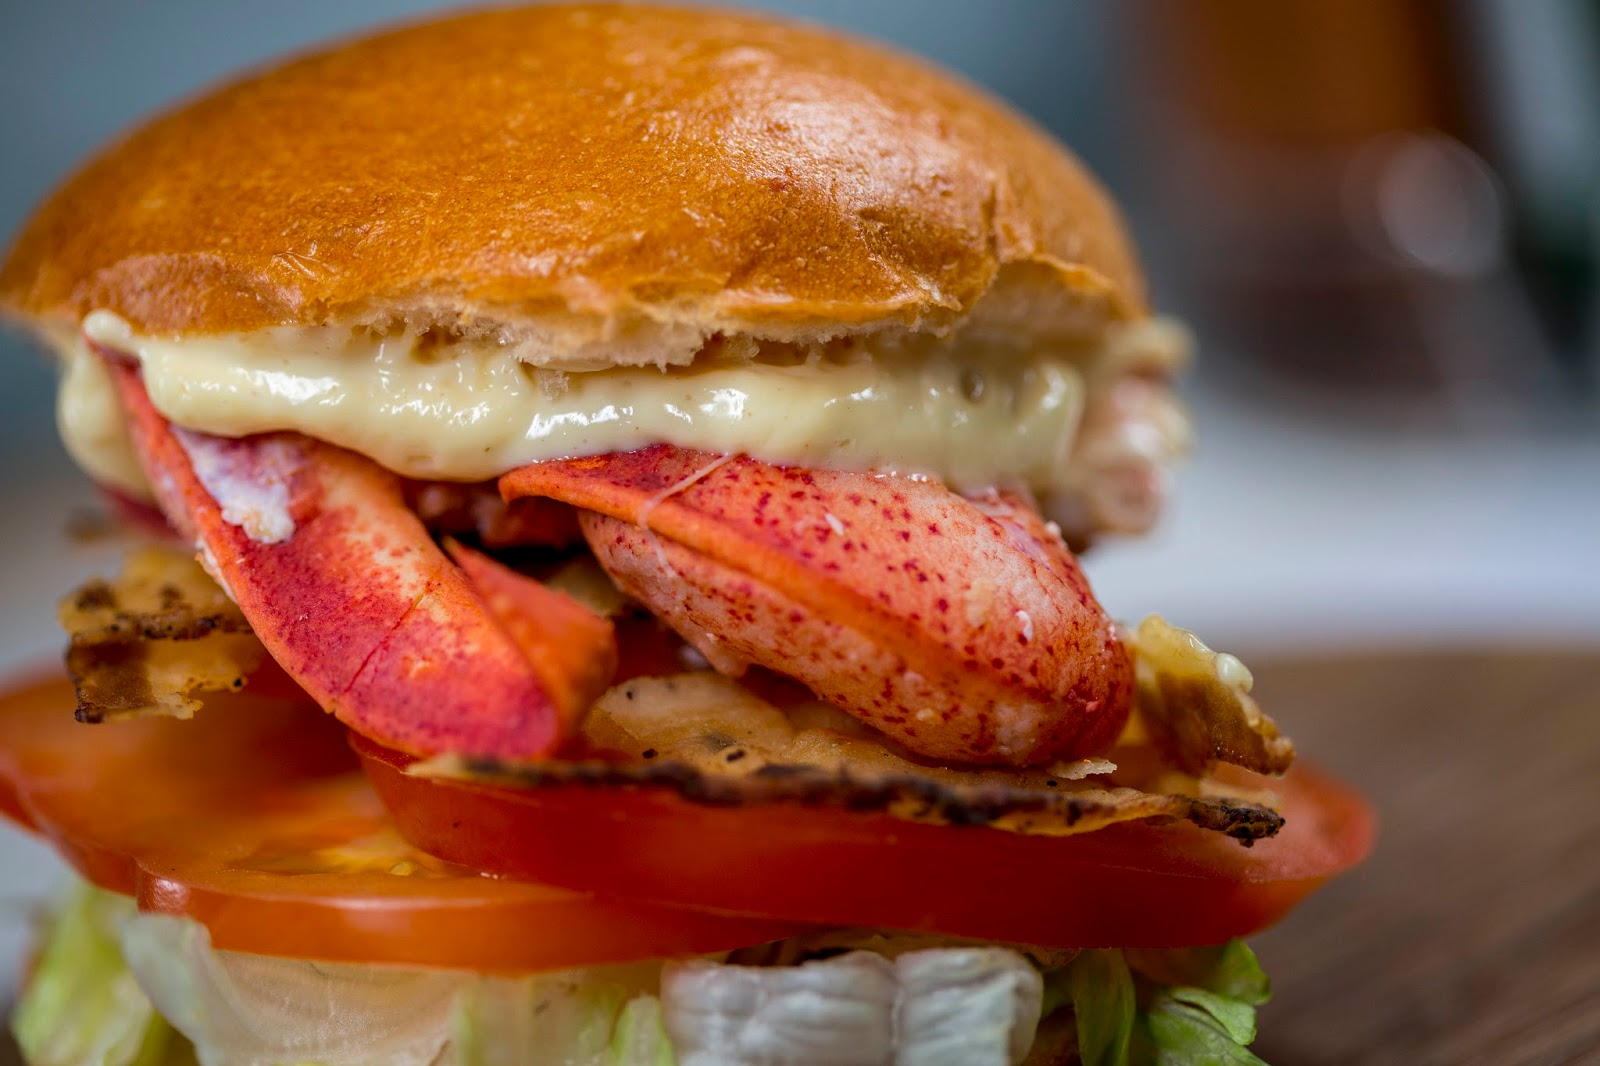 London pop ups claw 39 s weekend brunch at fish market near for Pops fish market